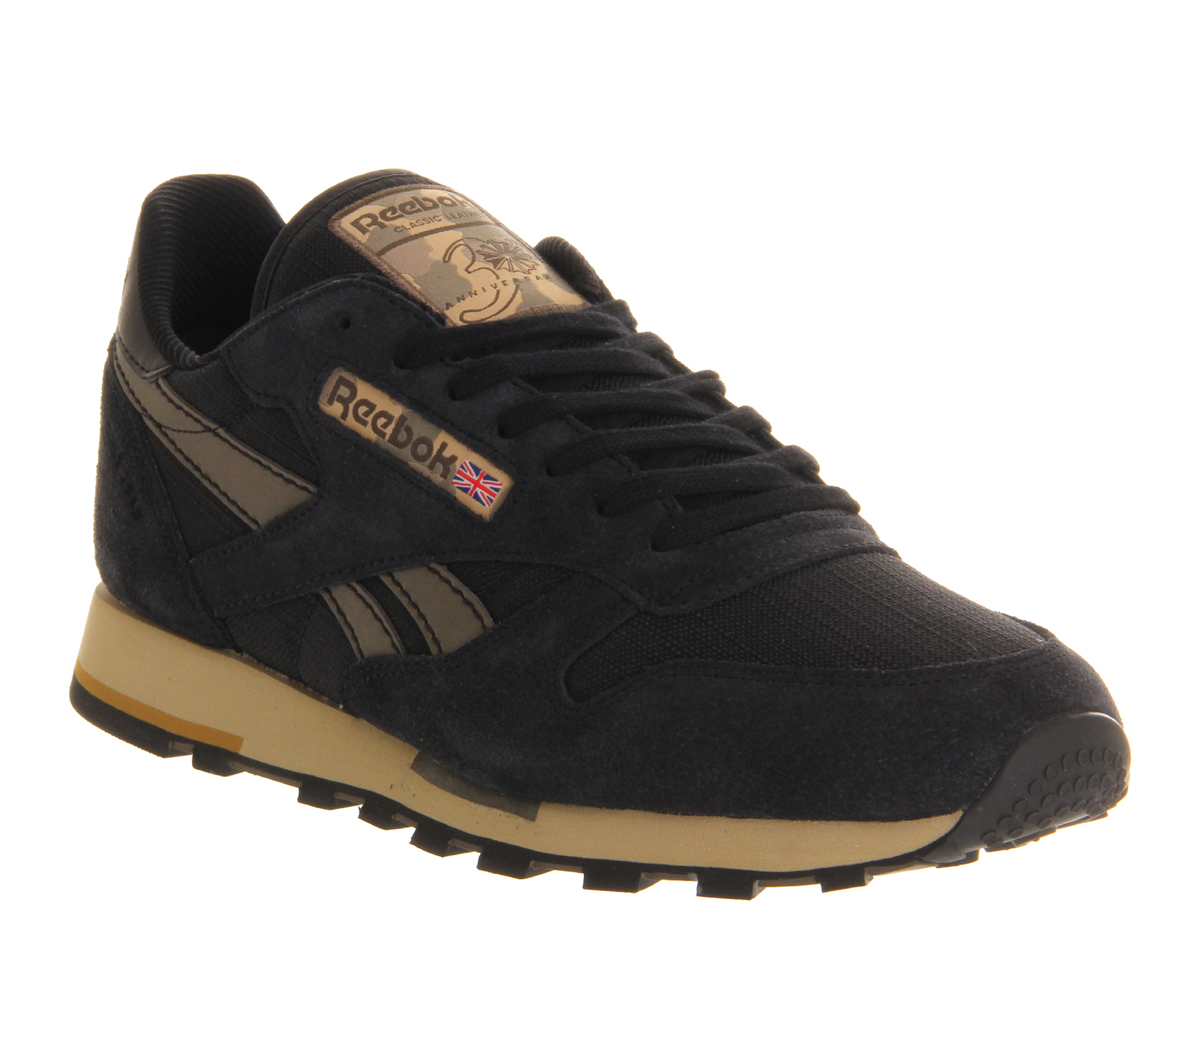 ed45d478bceceb Lyst - Reebok Cl Leather in Black for Men